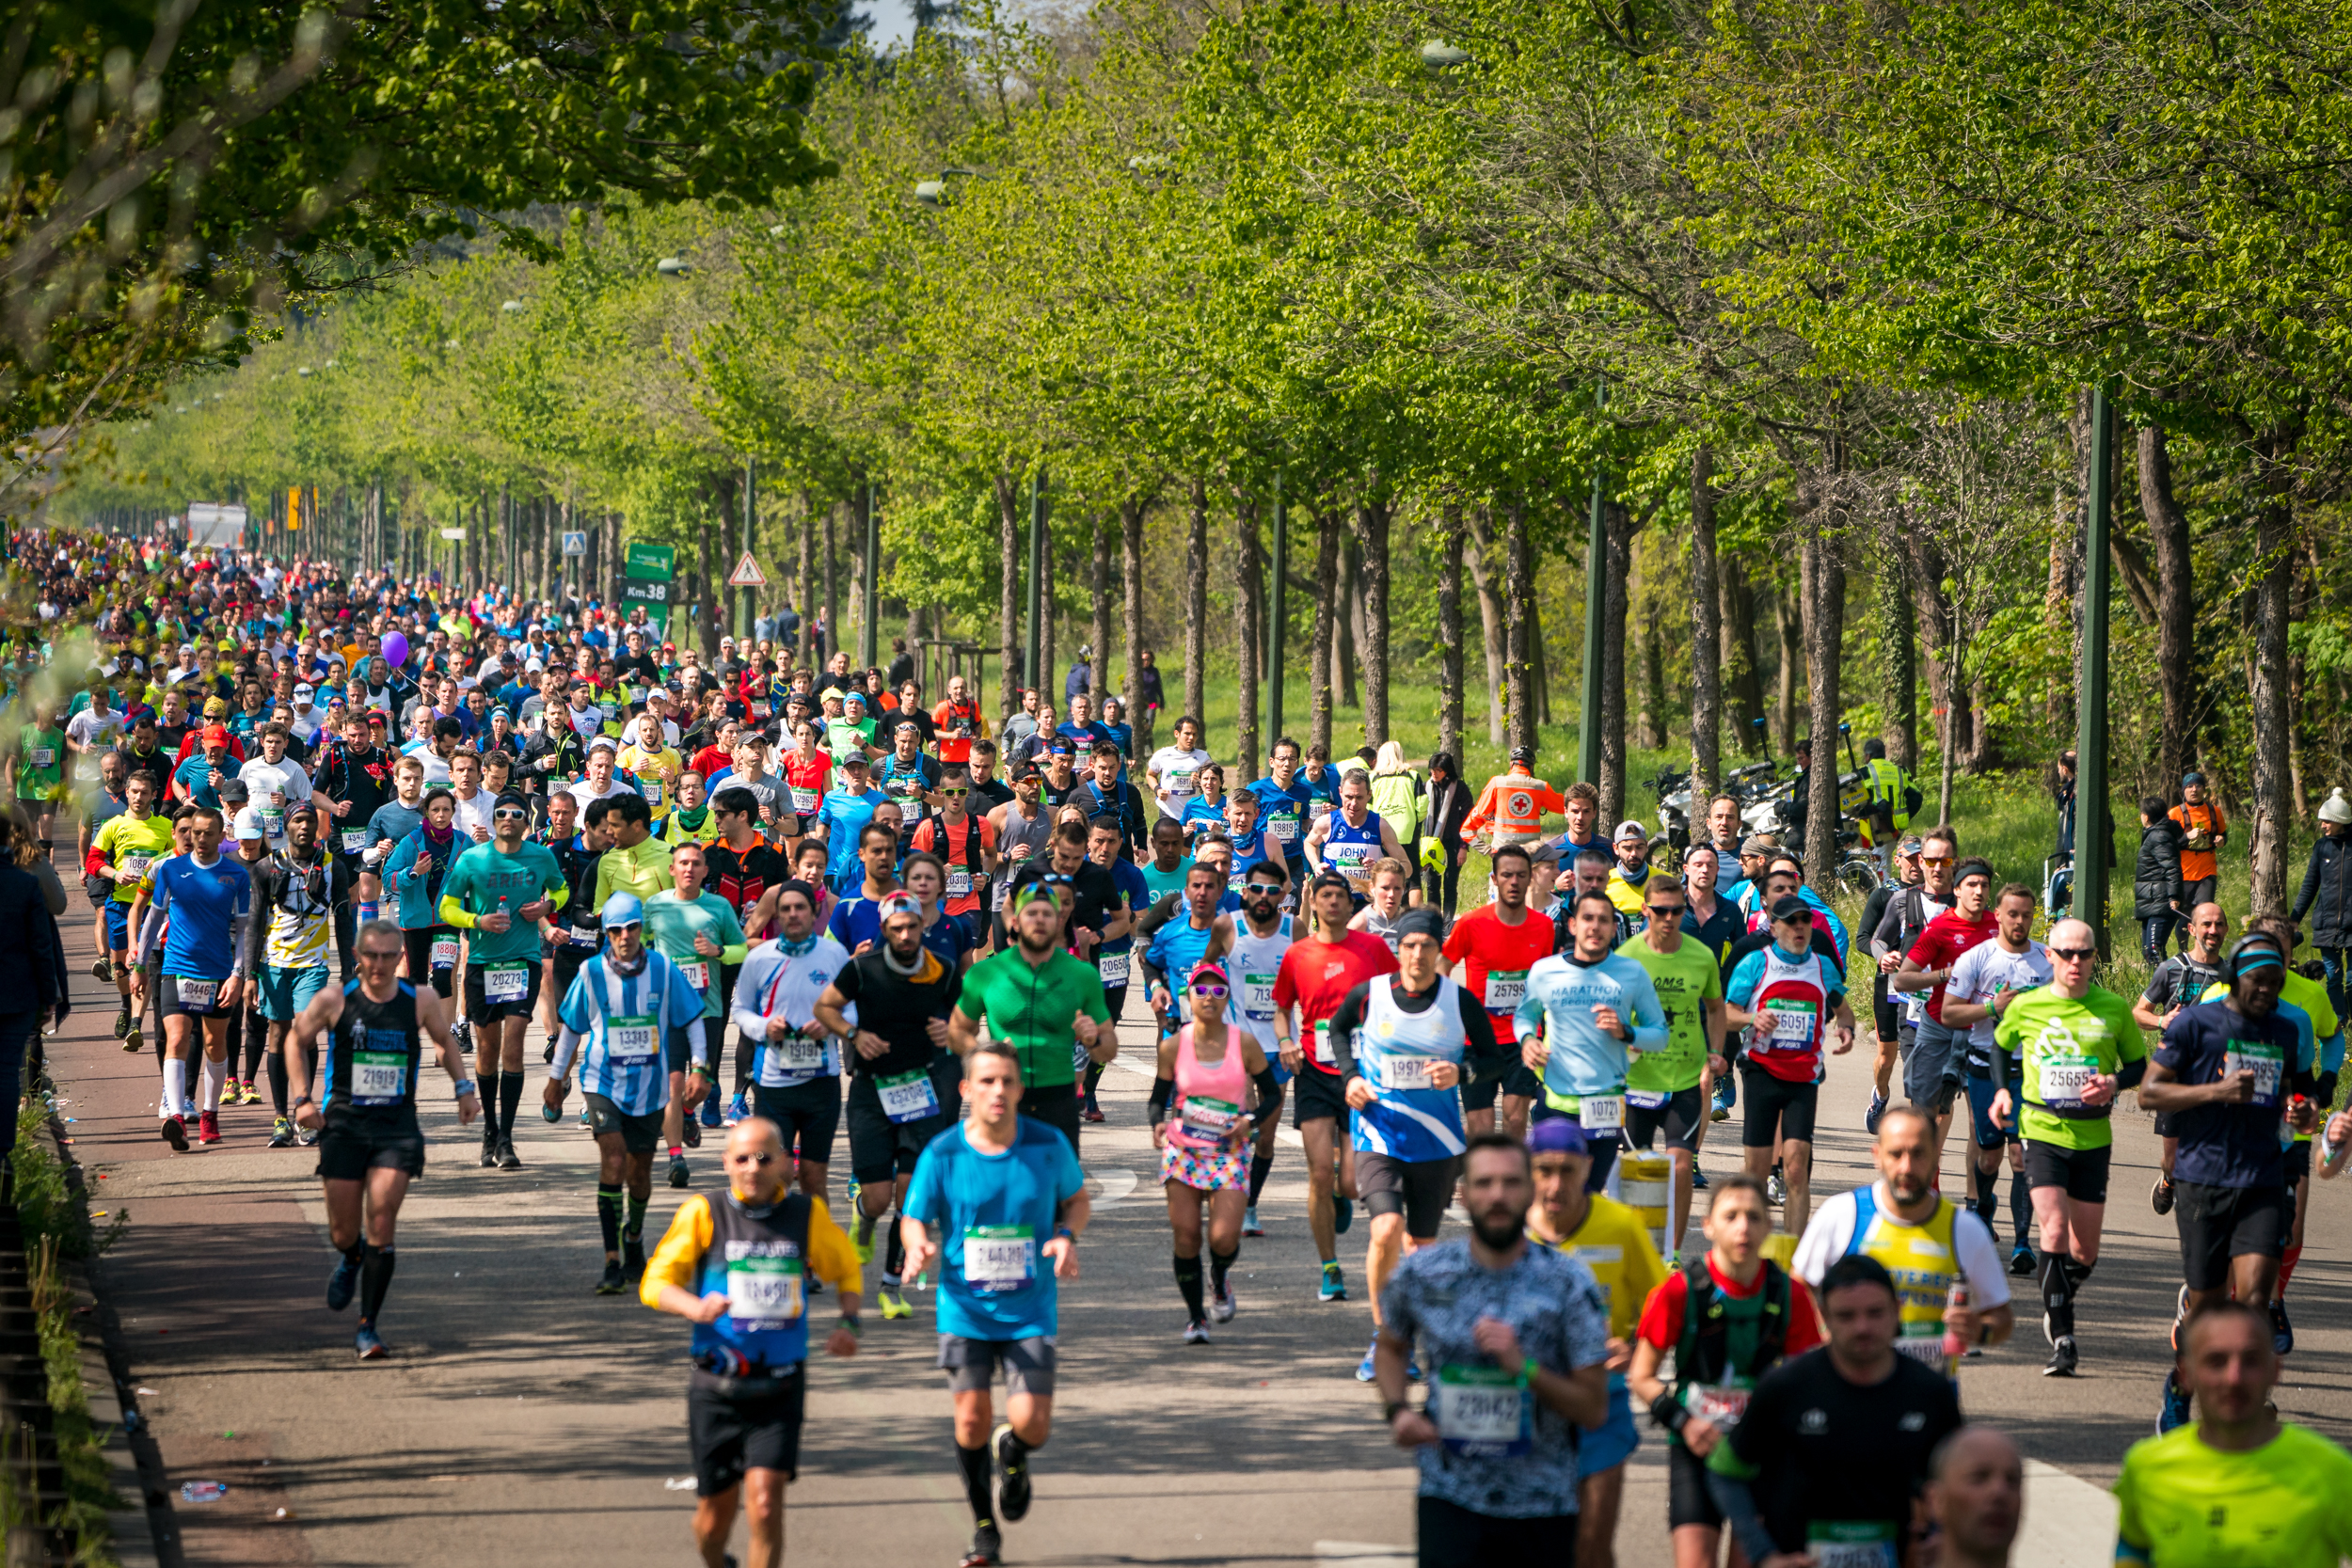 BMW_Marathon Paris 2019_Florian Leger_SHARE & DARE_HD_ N°-155.jpg